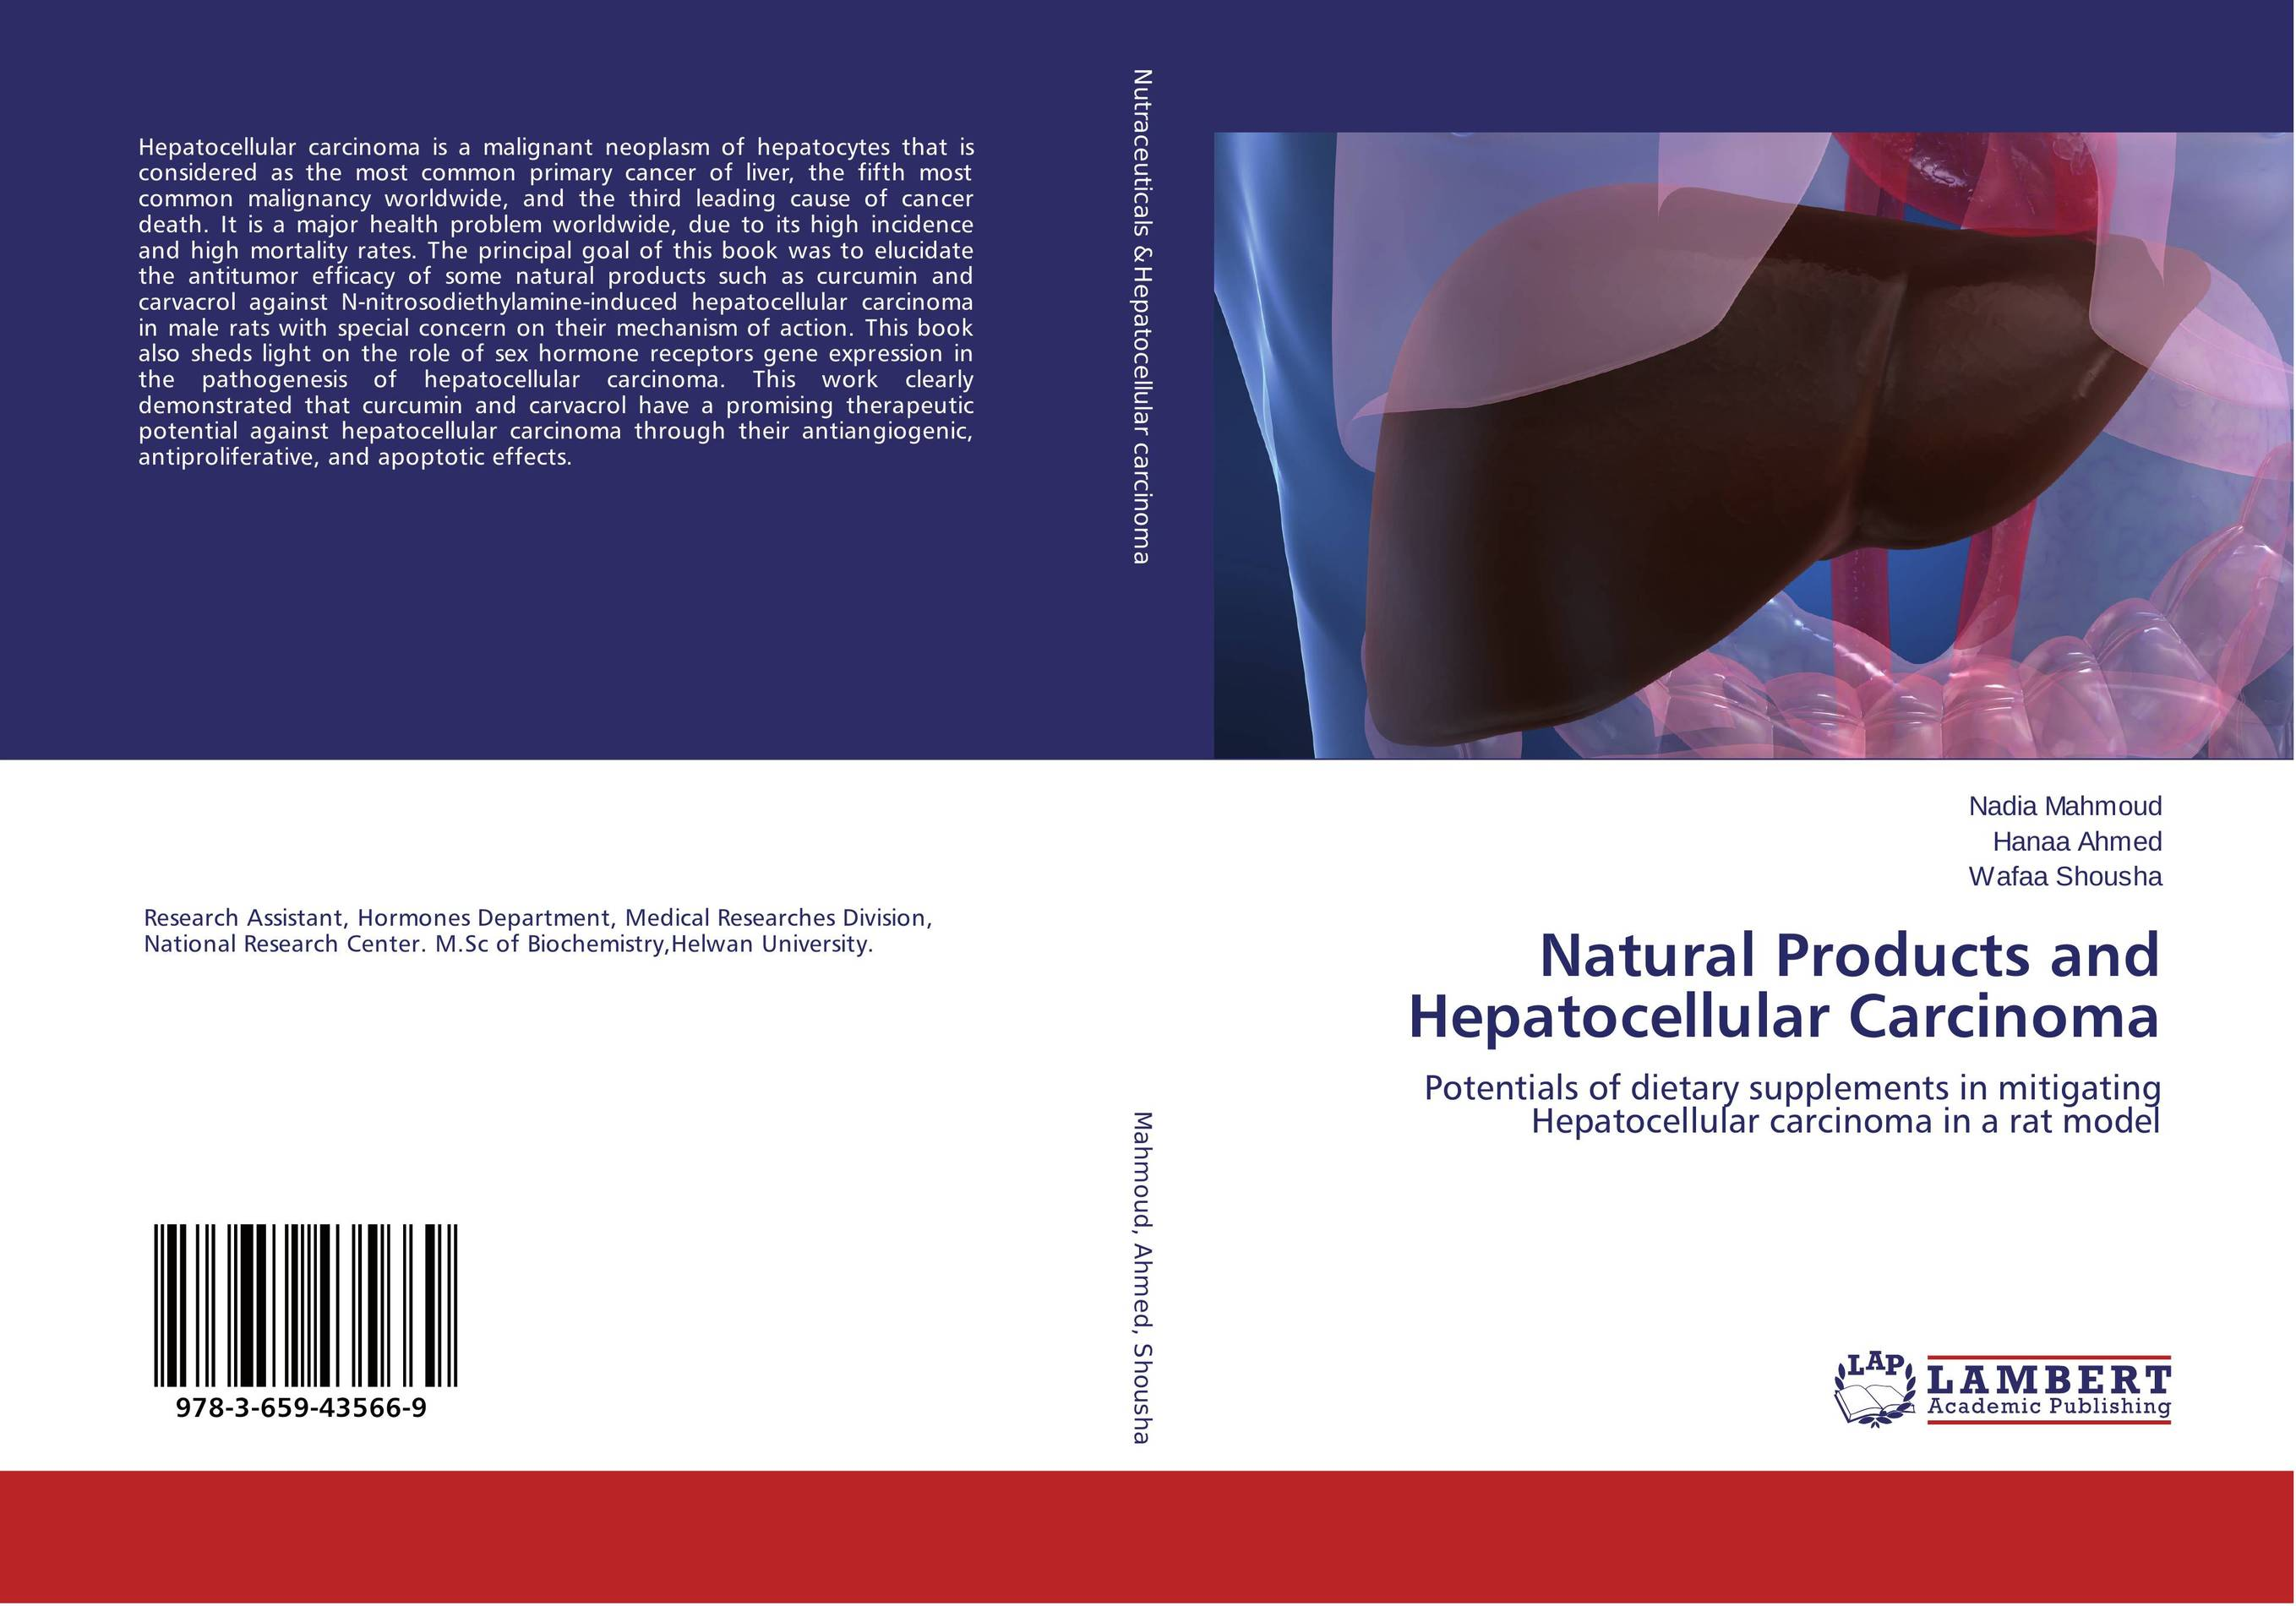 Natural Products and Hepatocellular Carcinoma the role of evaluation as a mechanism for advancing principal practice